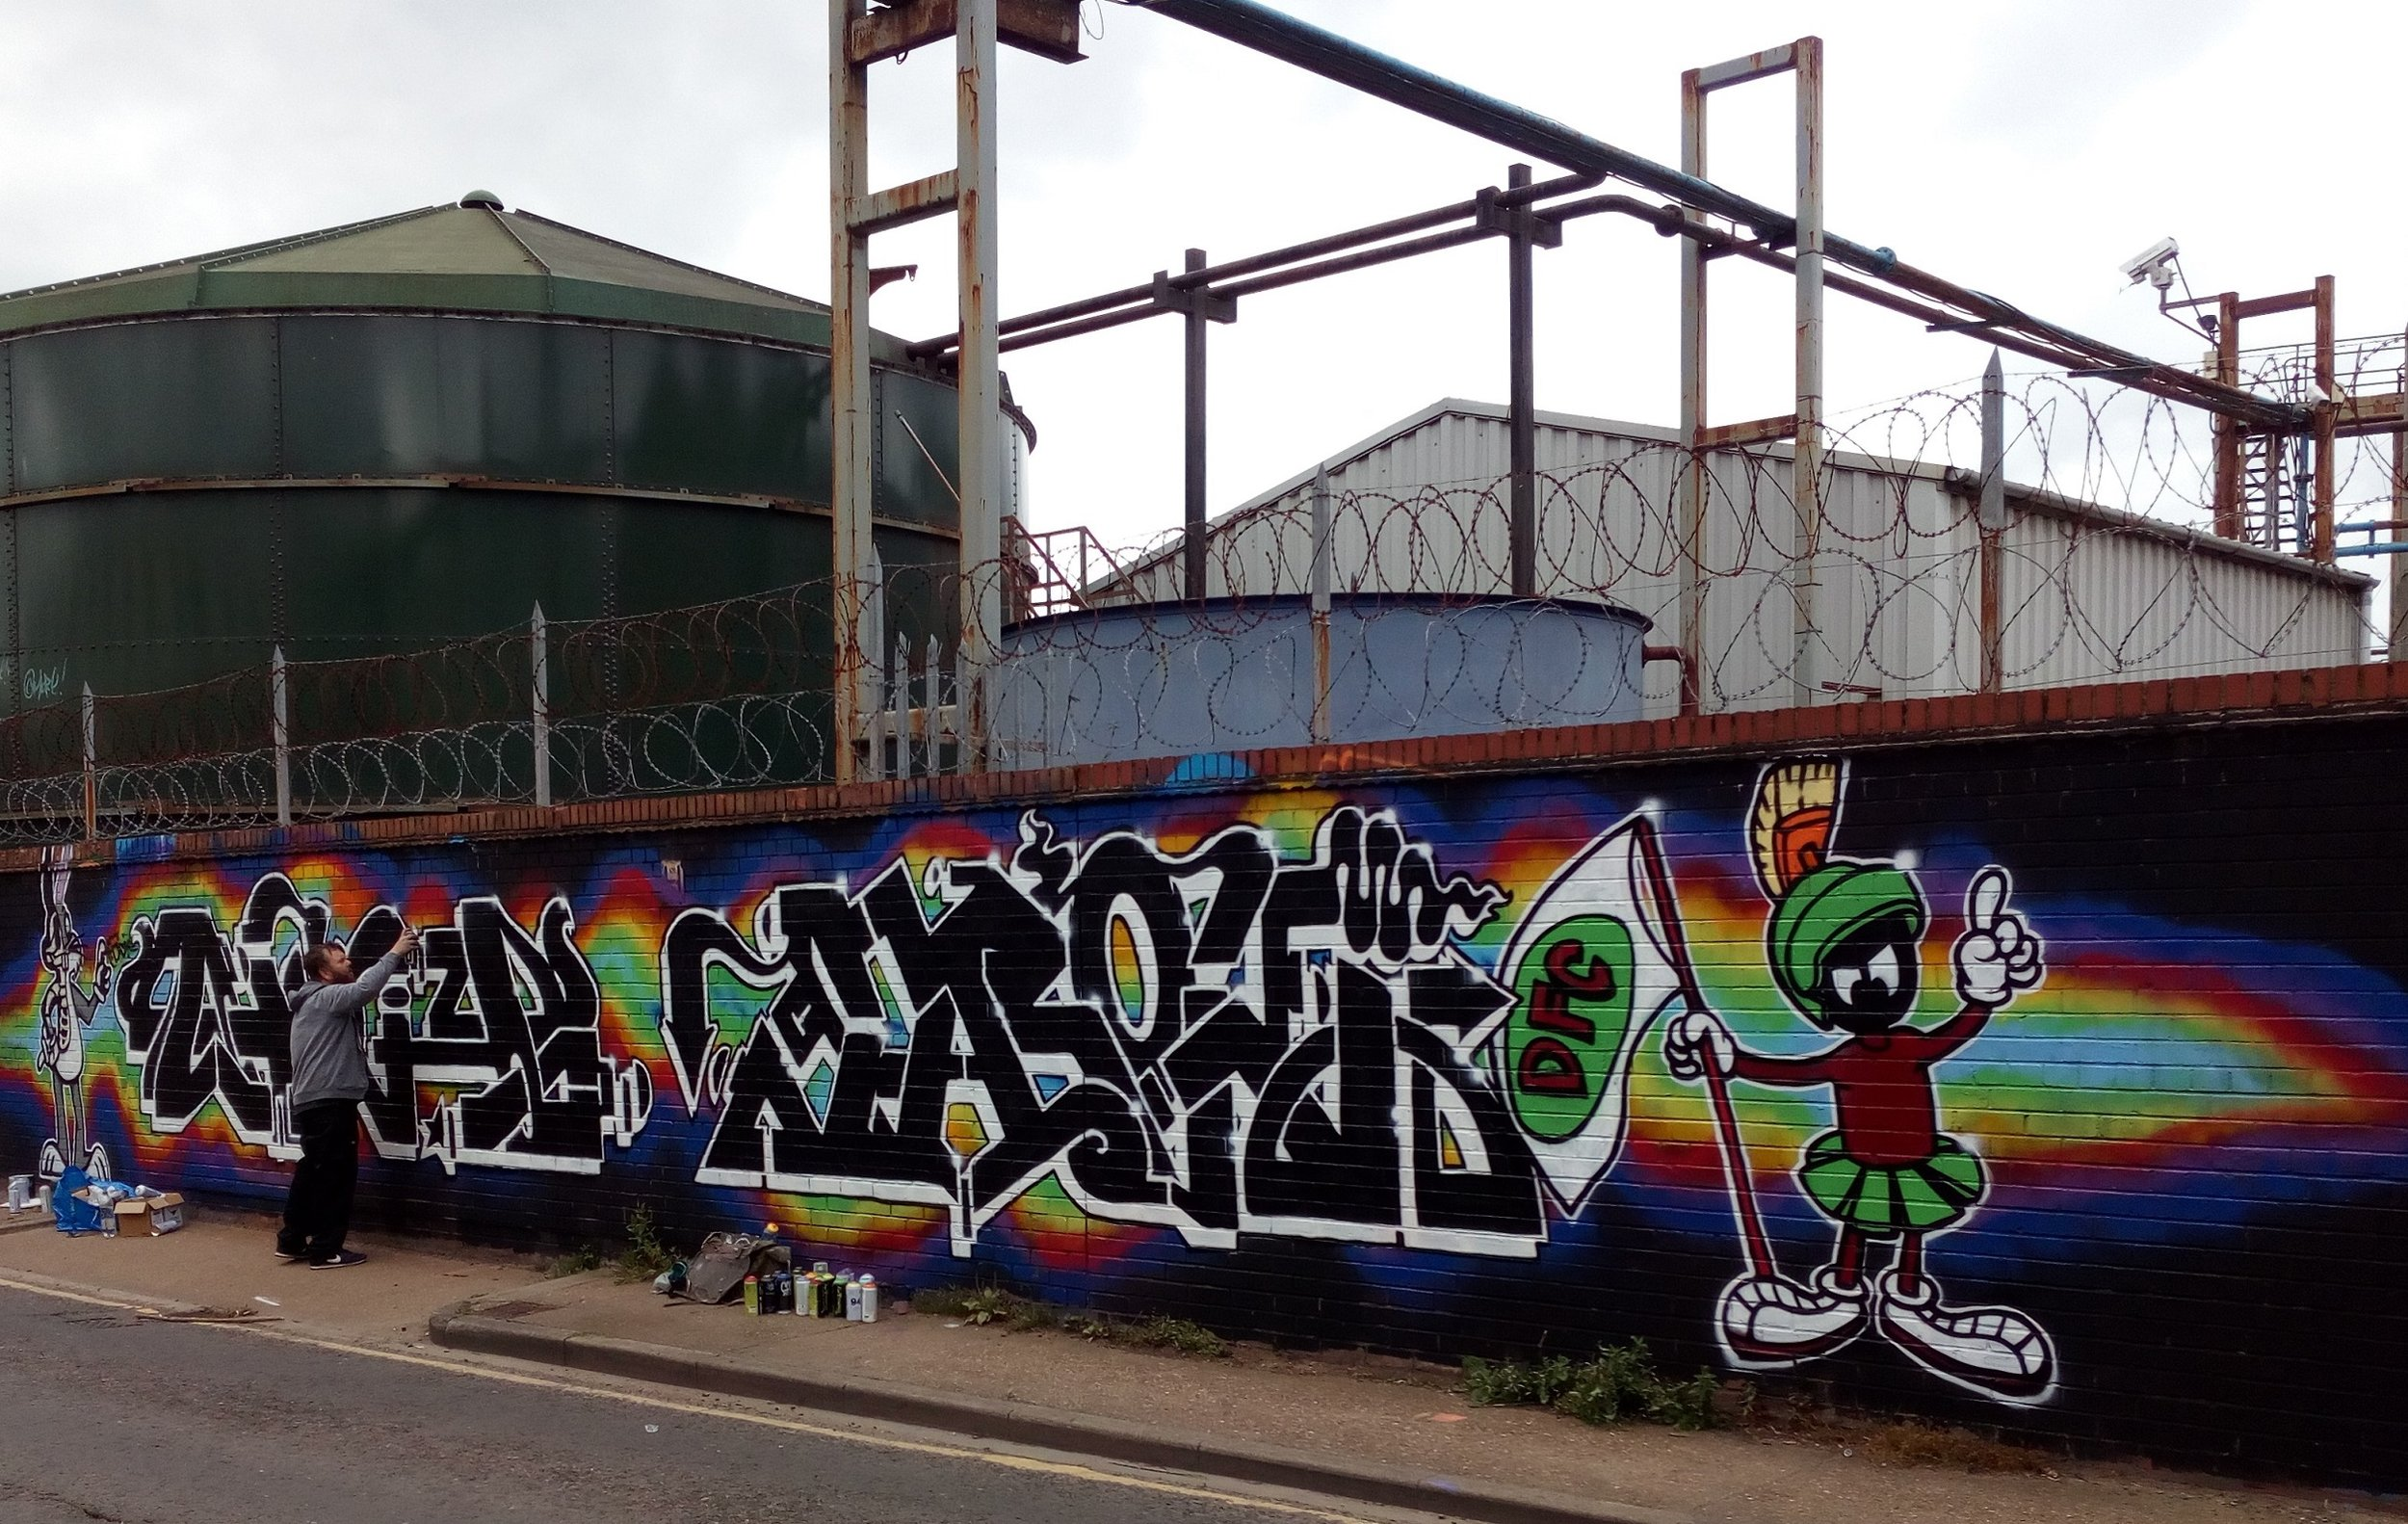 Graffiti artwork by Nohone and VRok of the DFC crew at Bankside Gallery, Hull